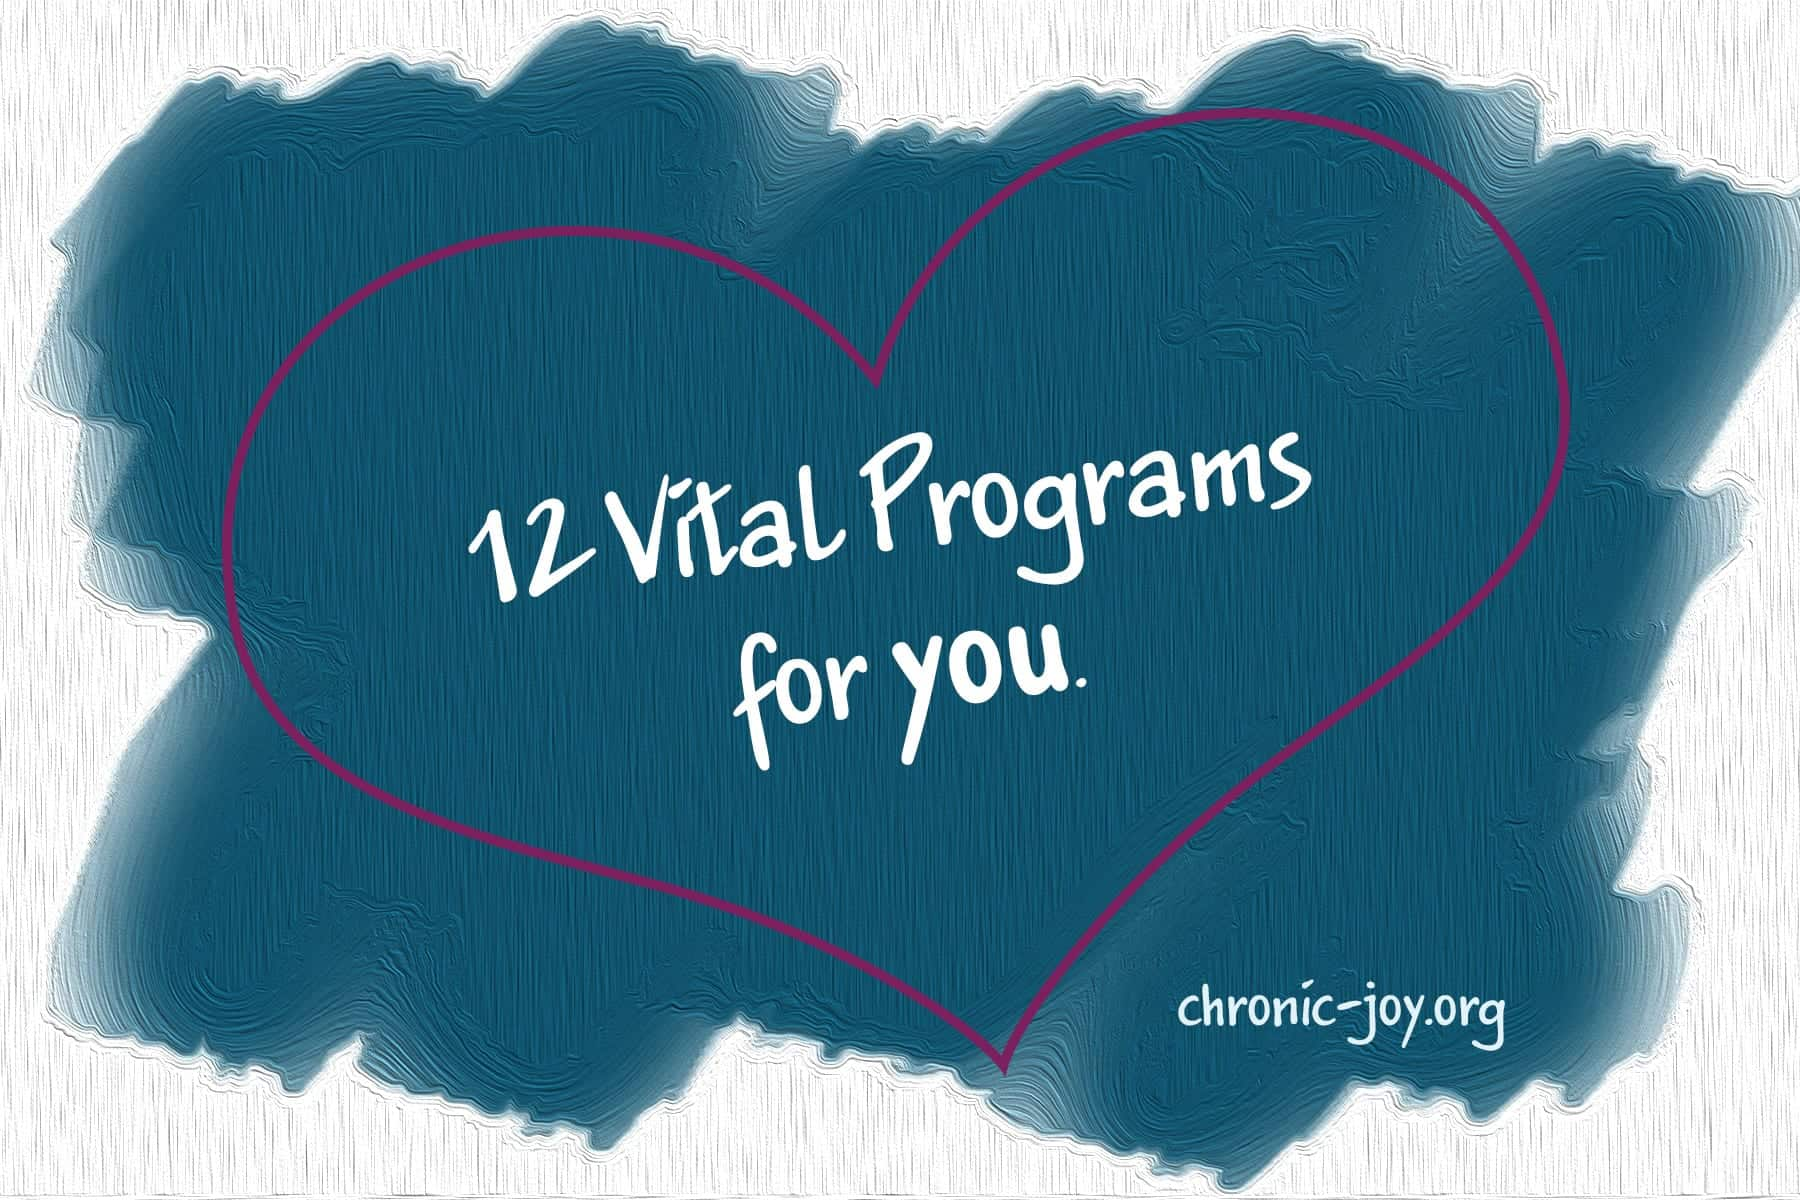 12 Vital Programs for you.